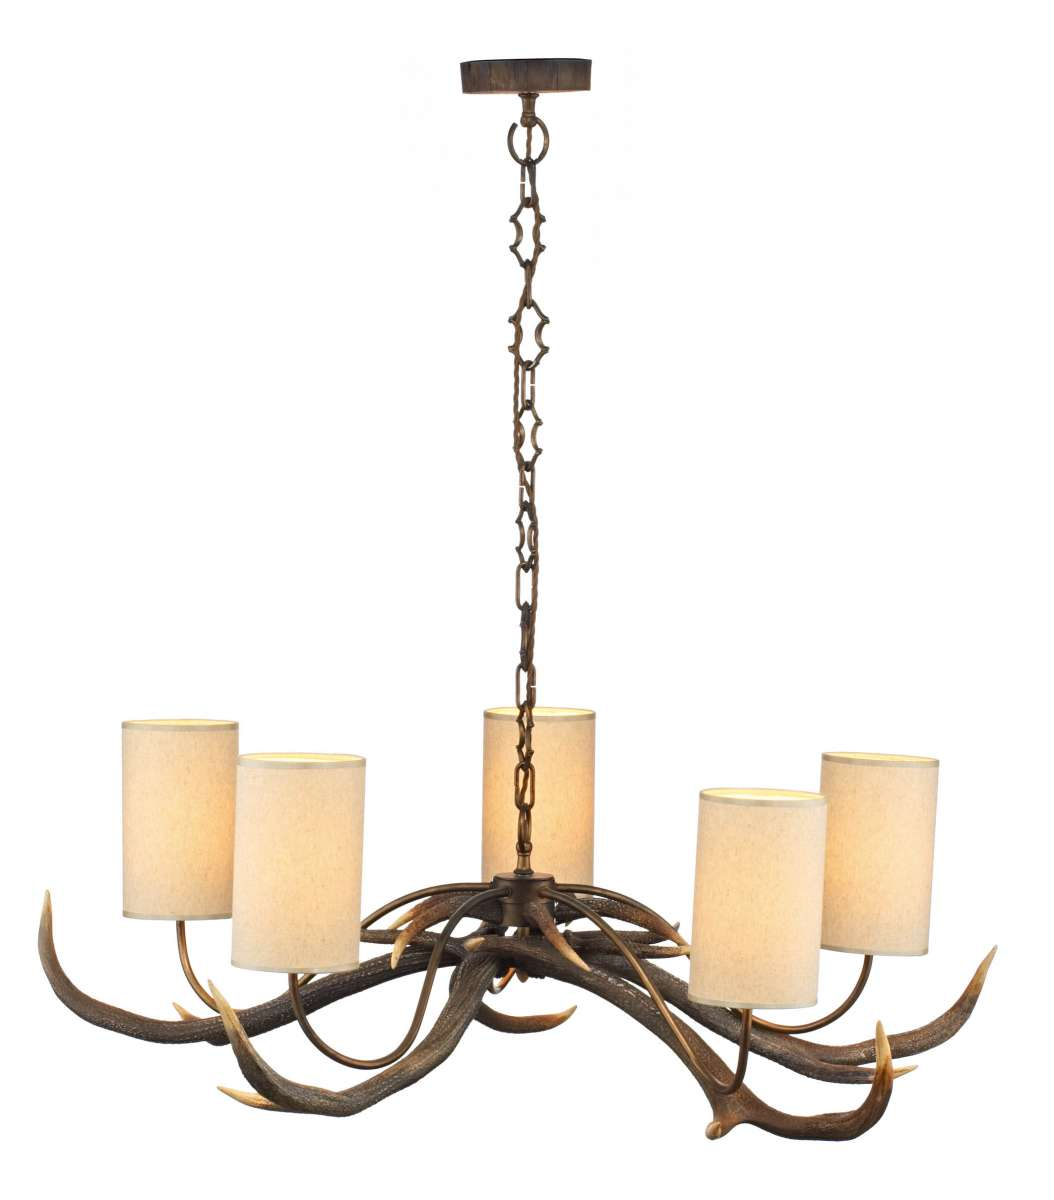 Antler 5-Light Highland Rustic Fitting | Online Lighting Shop